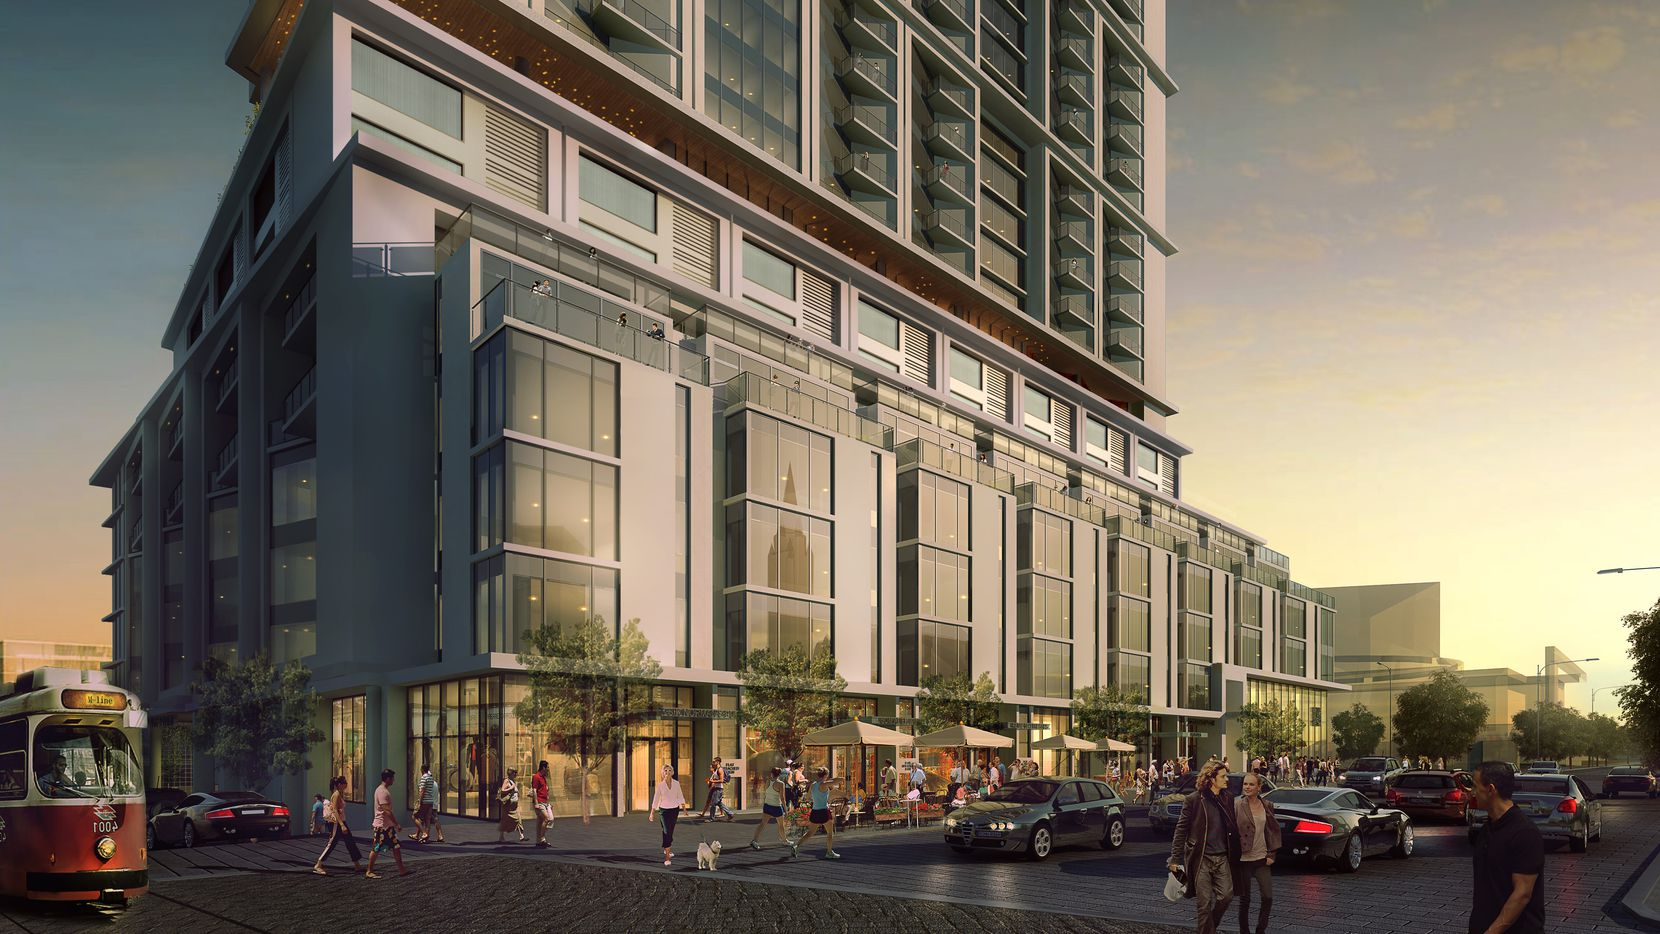 The Atelier apartments will be built in downtown Dallas' Arts District.